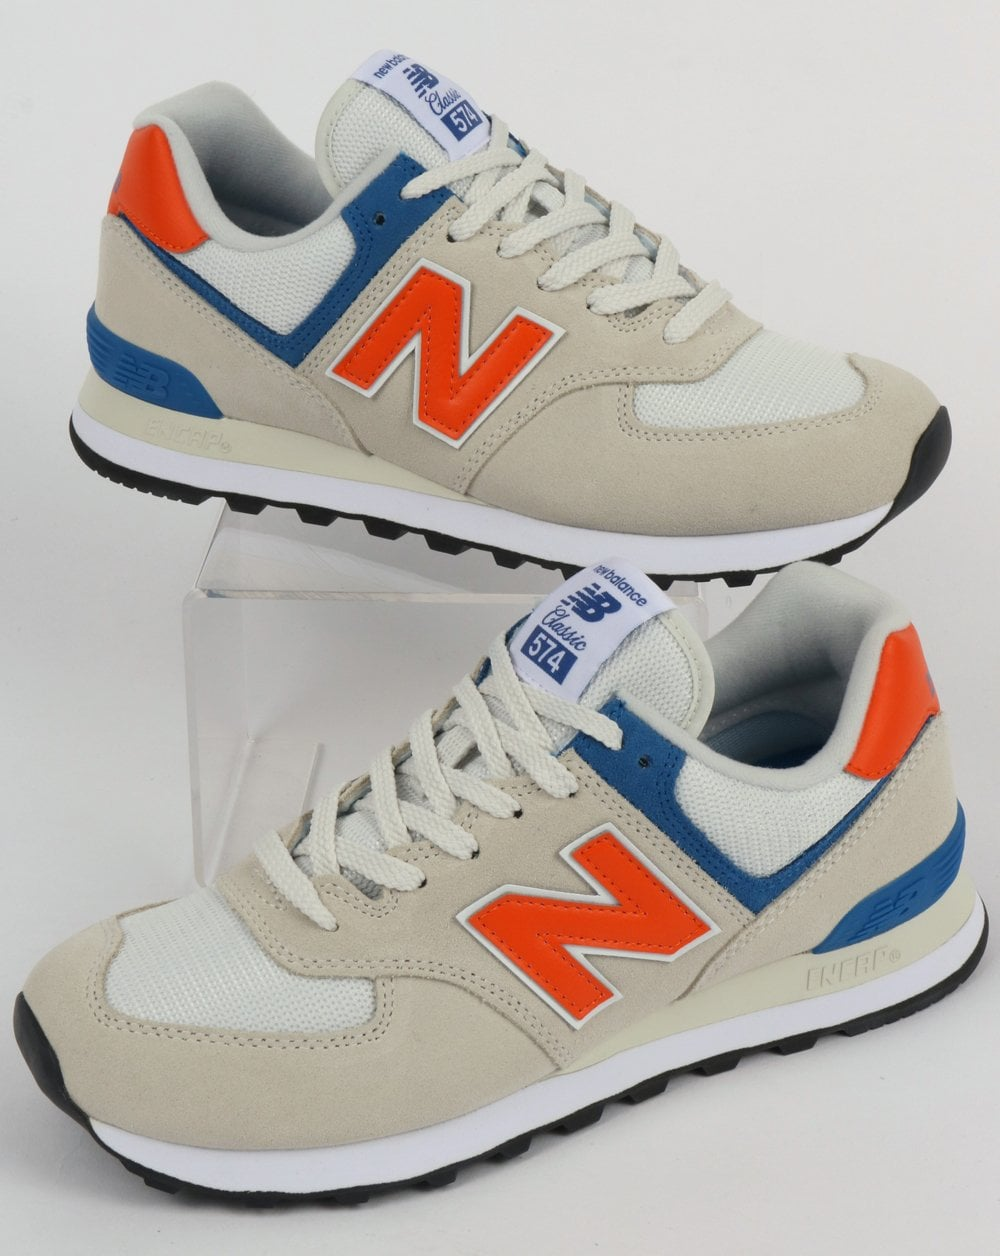 hot sale online 8d841 6c1d3 New Balance 574 Trainers White/Orange